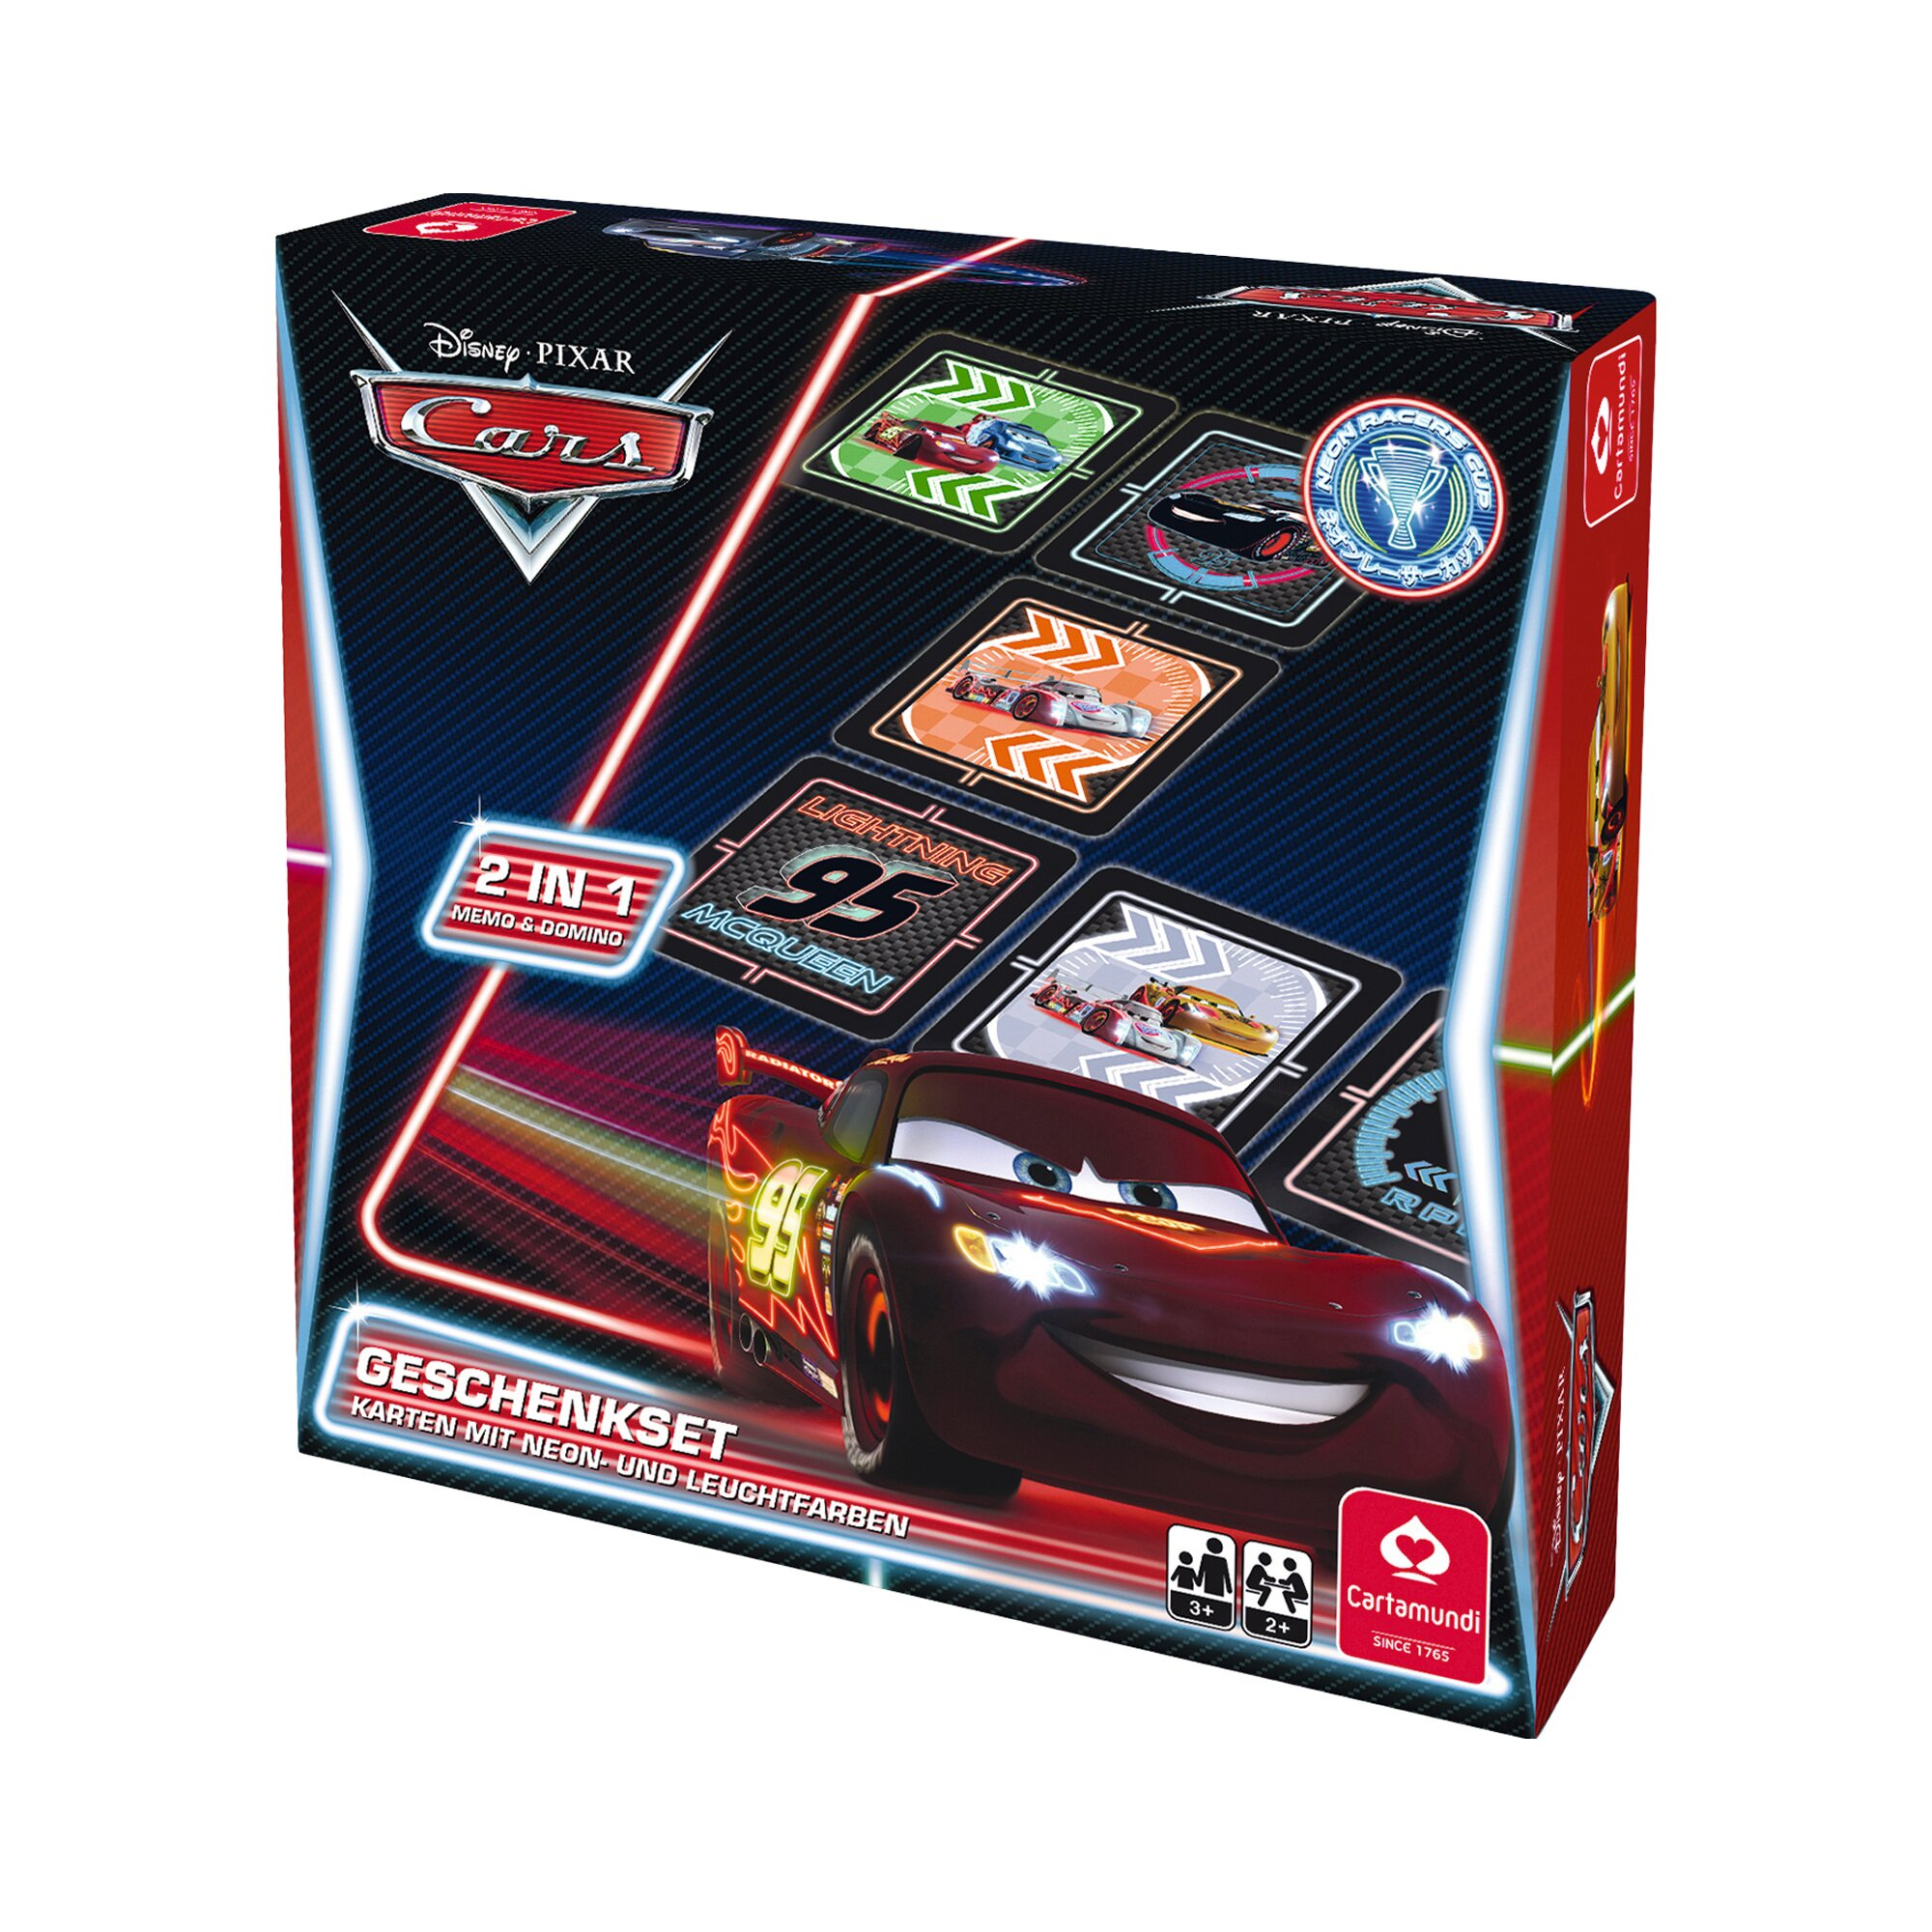 Disney Cars Geschenkset 2 in 1 Memo & Domino